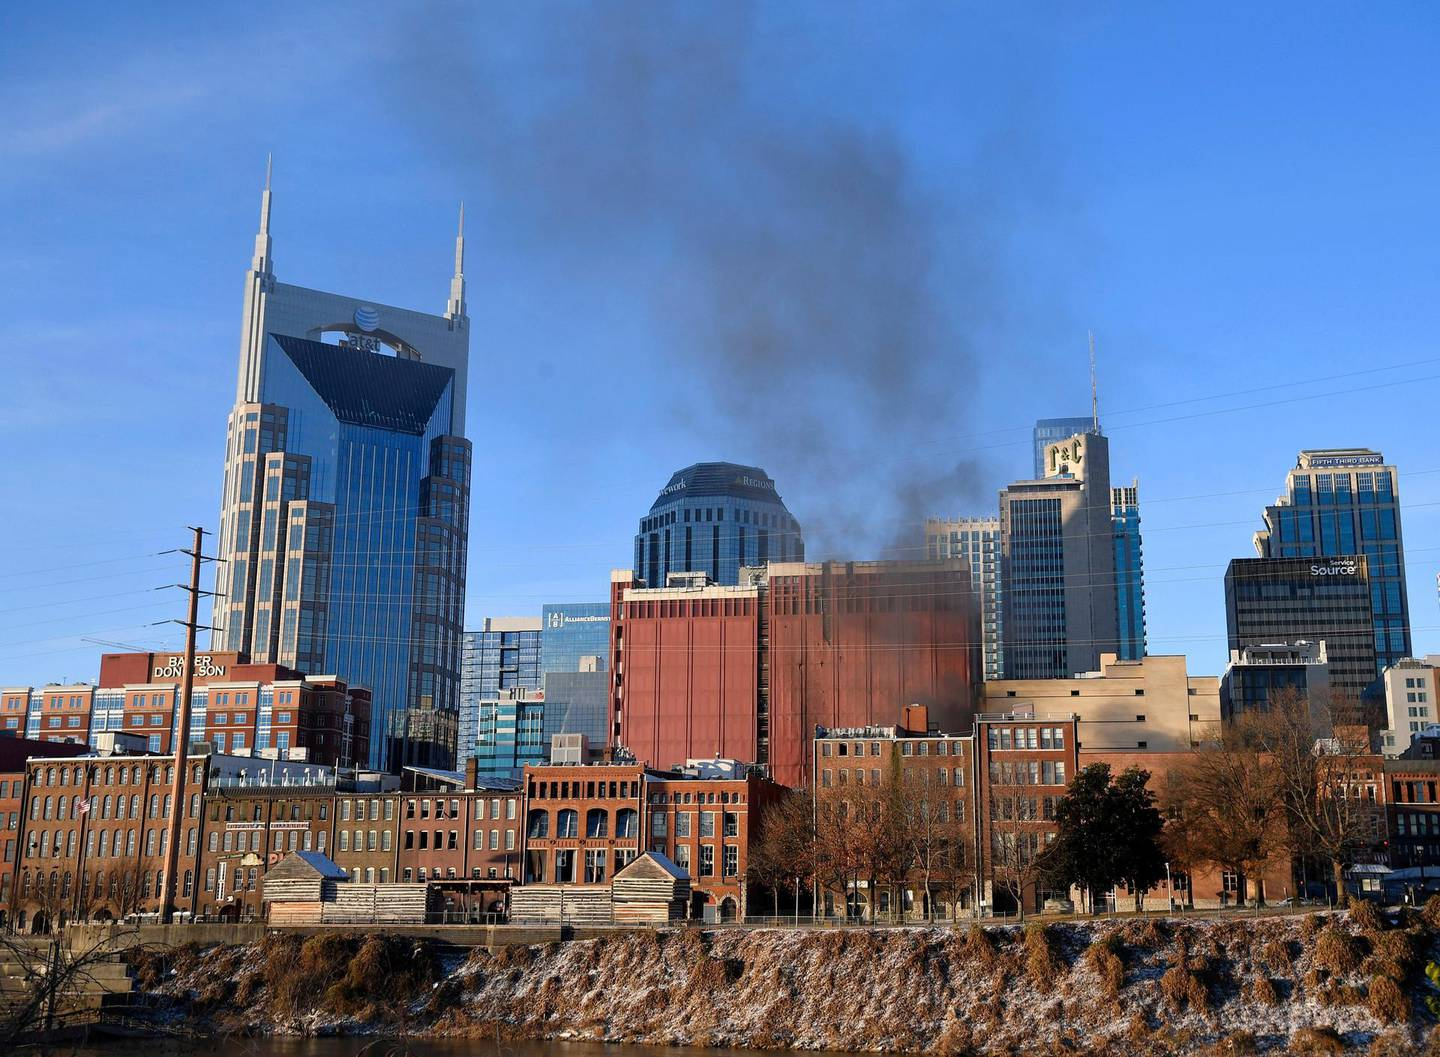 Smoke billows from the site of an explosion in the area of Second and Commerce in Nashville, Tennessee, U.S. December 25, 2020. Andrew Nelles/Tennessean.com/USA TODAY NETWORK via REUTERS.   NO RESALES. NO ARCHIVES